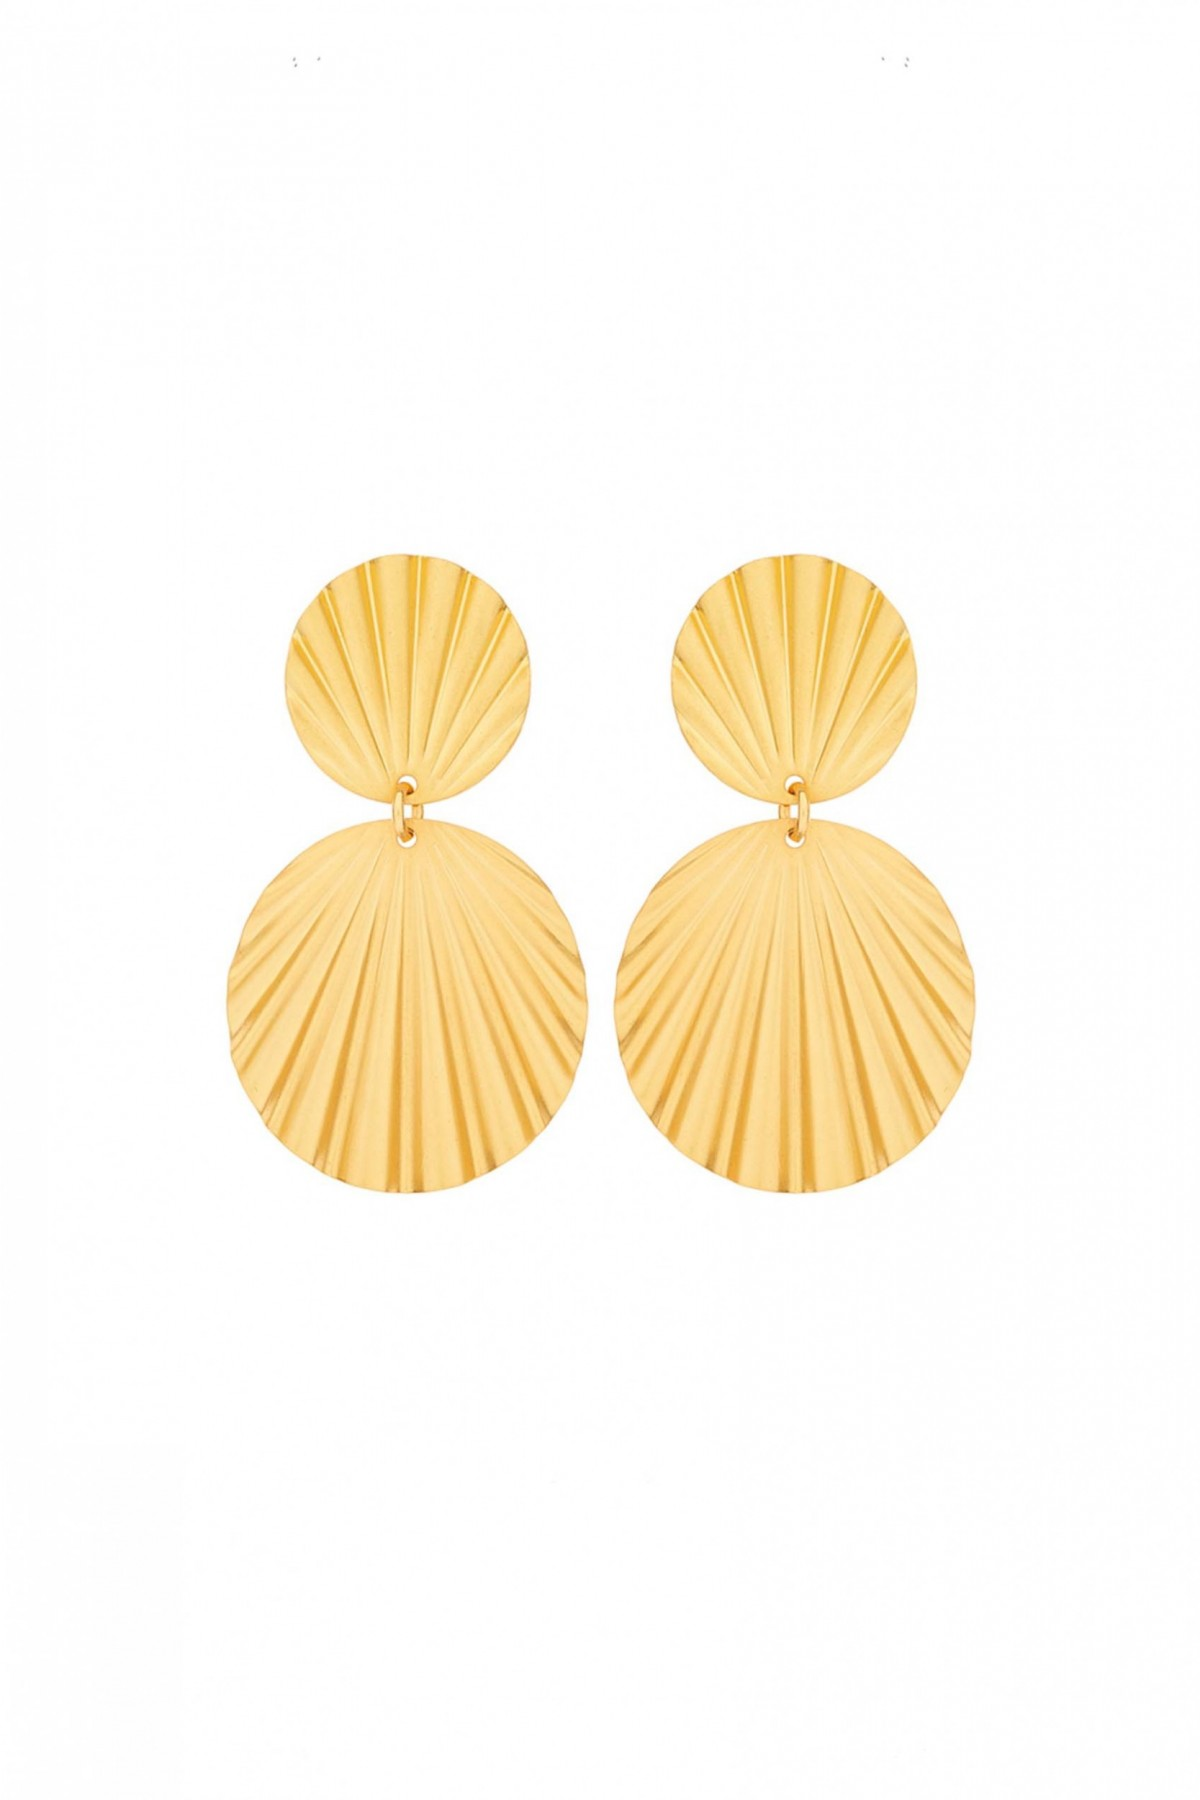 Double Sunshine Earrings